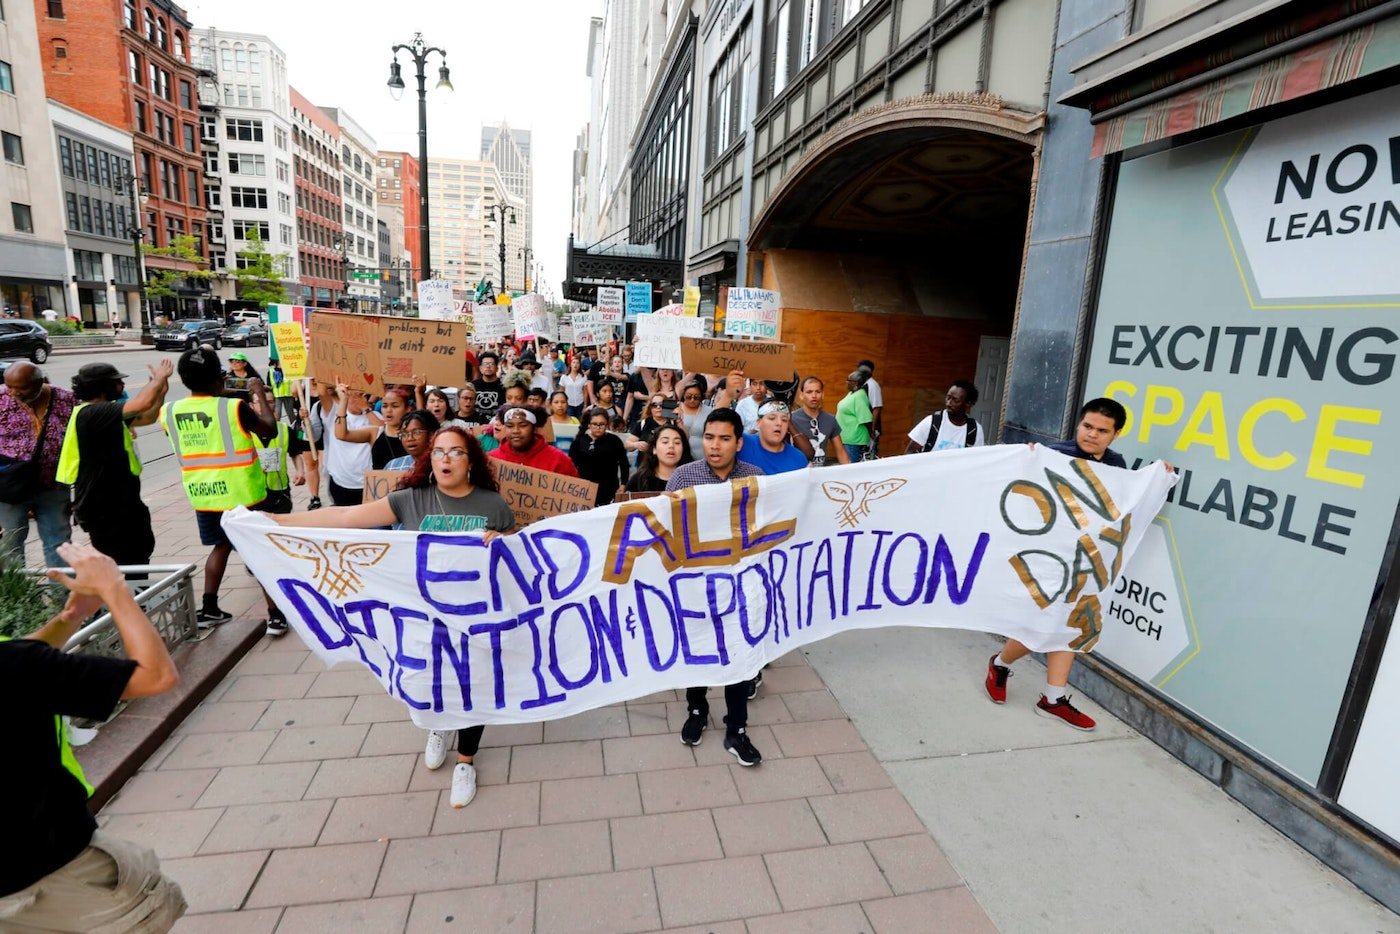 Pro-immigration protesters march down Woodward Ave to Grand Circus Park in July 2019 in Detroit, Michigan, before a Democratic primary debate taking place at the nearby Fox Theatre. (Photo by JEFF KOWALSKY /AFP via Getty Images)